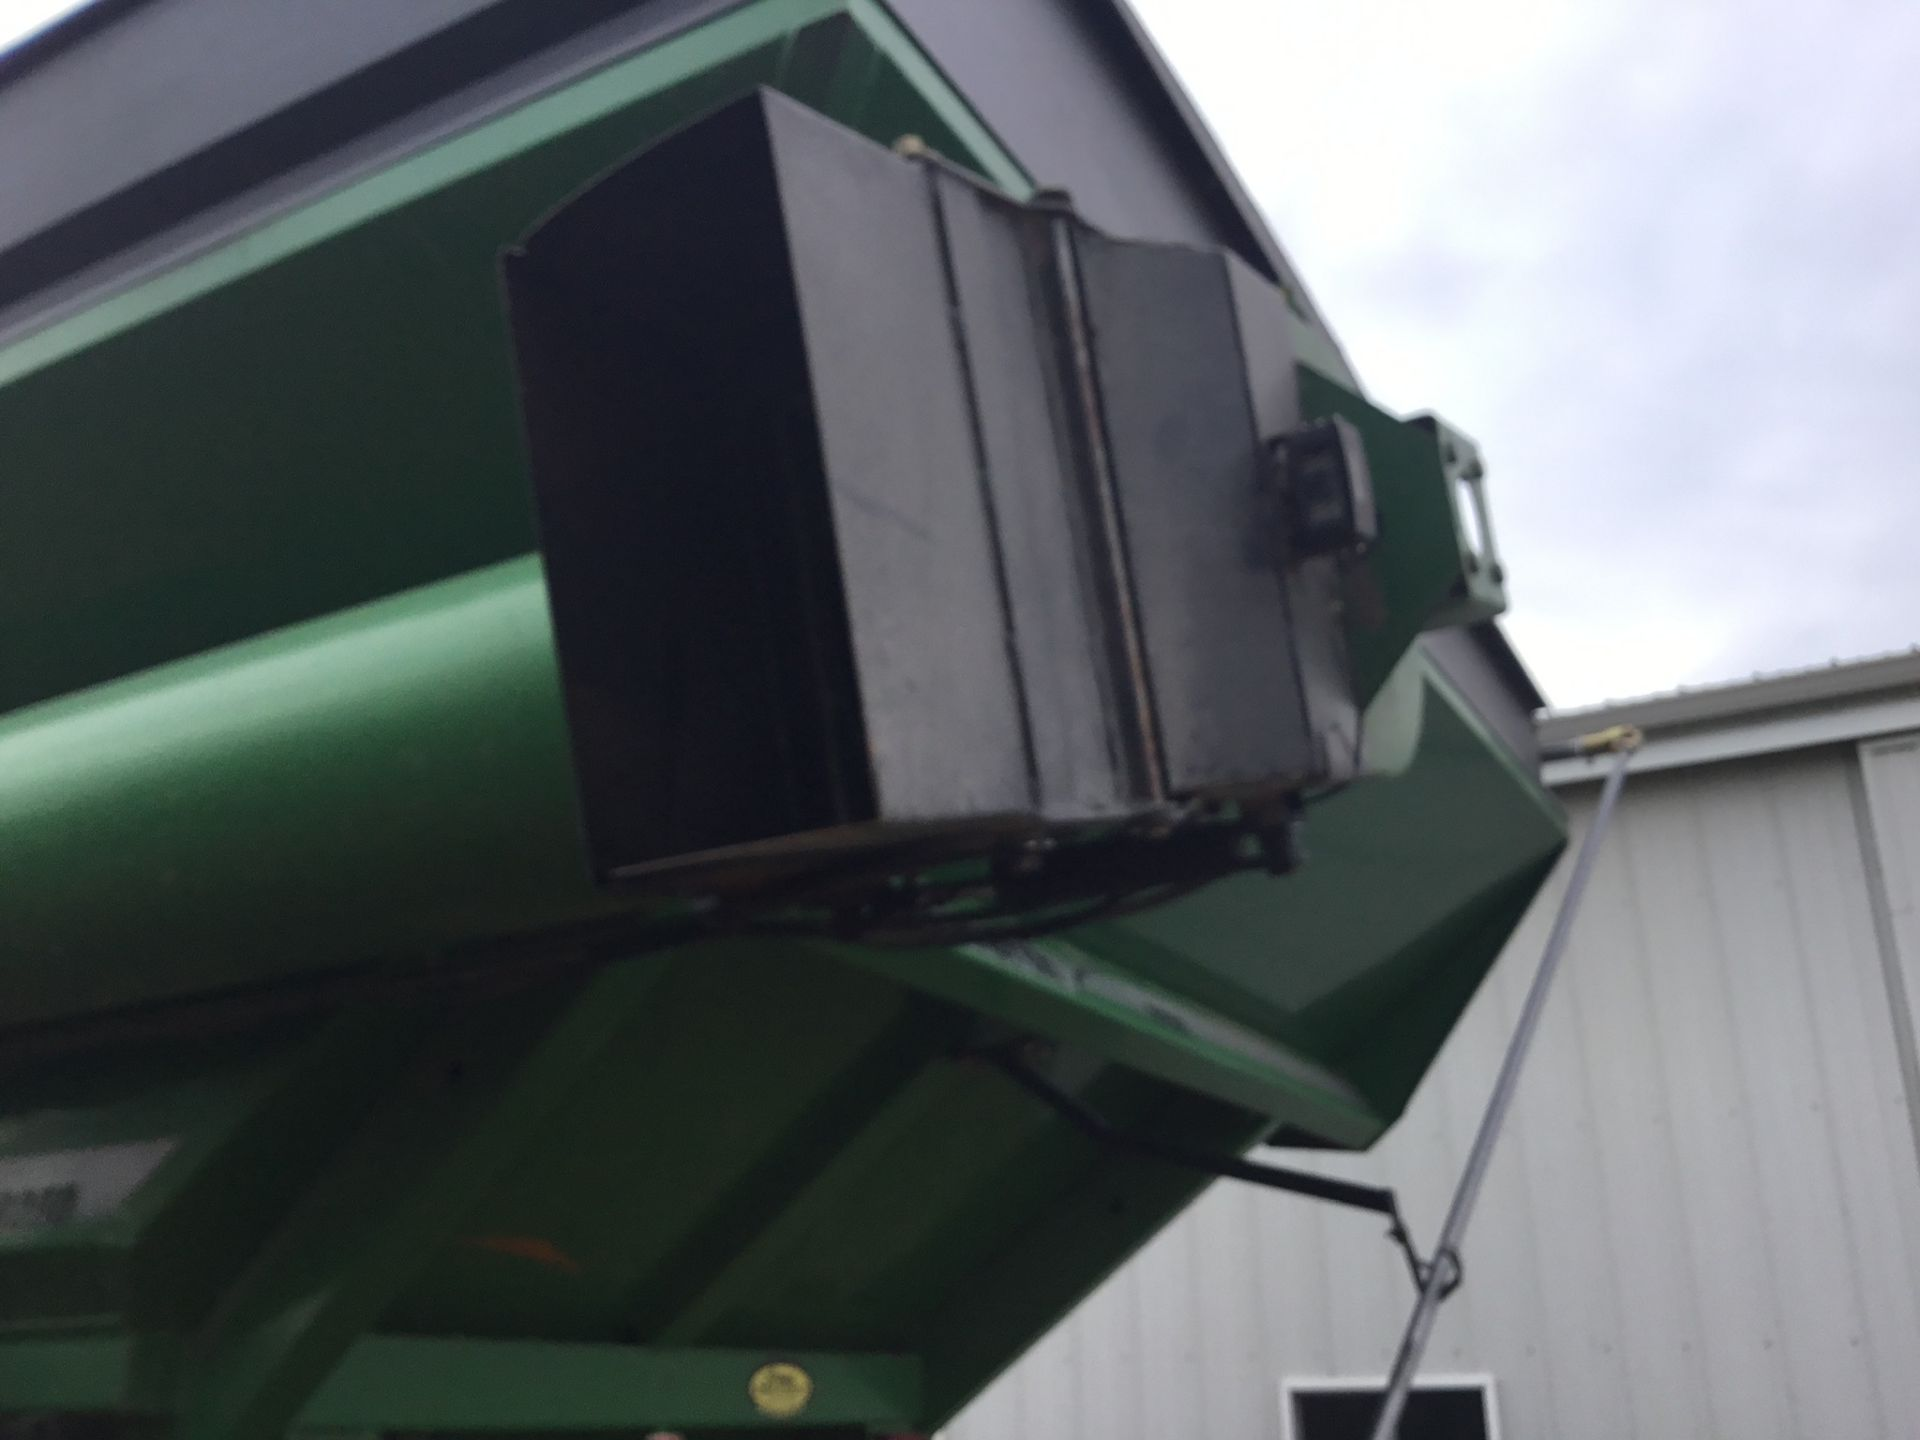 2009 Unverferth 9250 1,000 Bu. Auger Cart, Hydraulic Spout, 3 Cameras, Roll Tarp, New Augers, 900- - Image 3 of 15